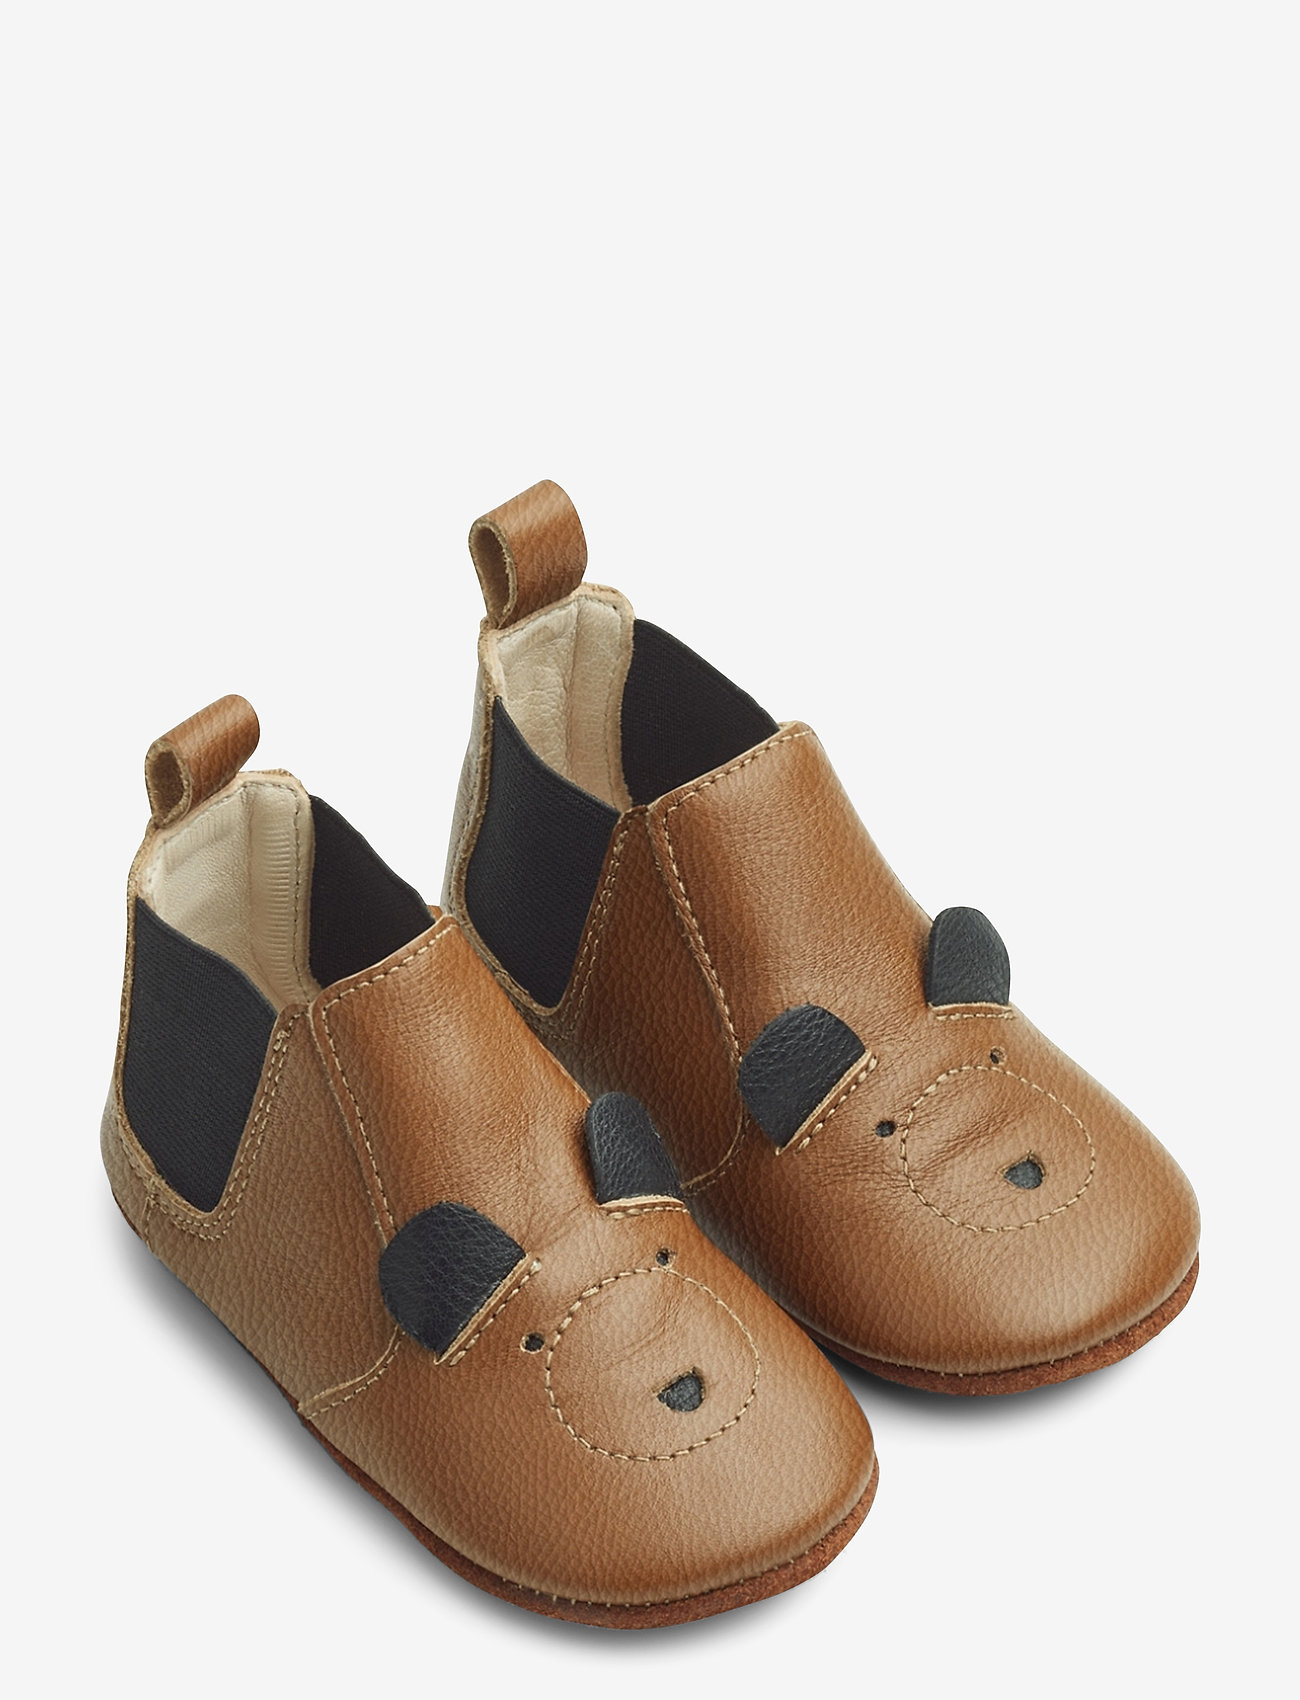 Liewood - Edith leather slippers - hausschuhe - mr bear mustard - 1